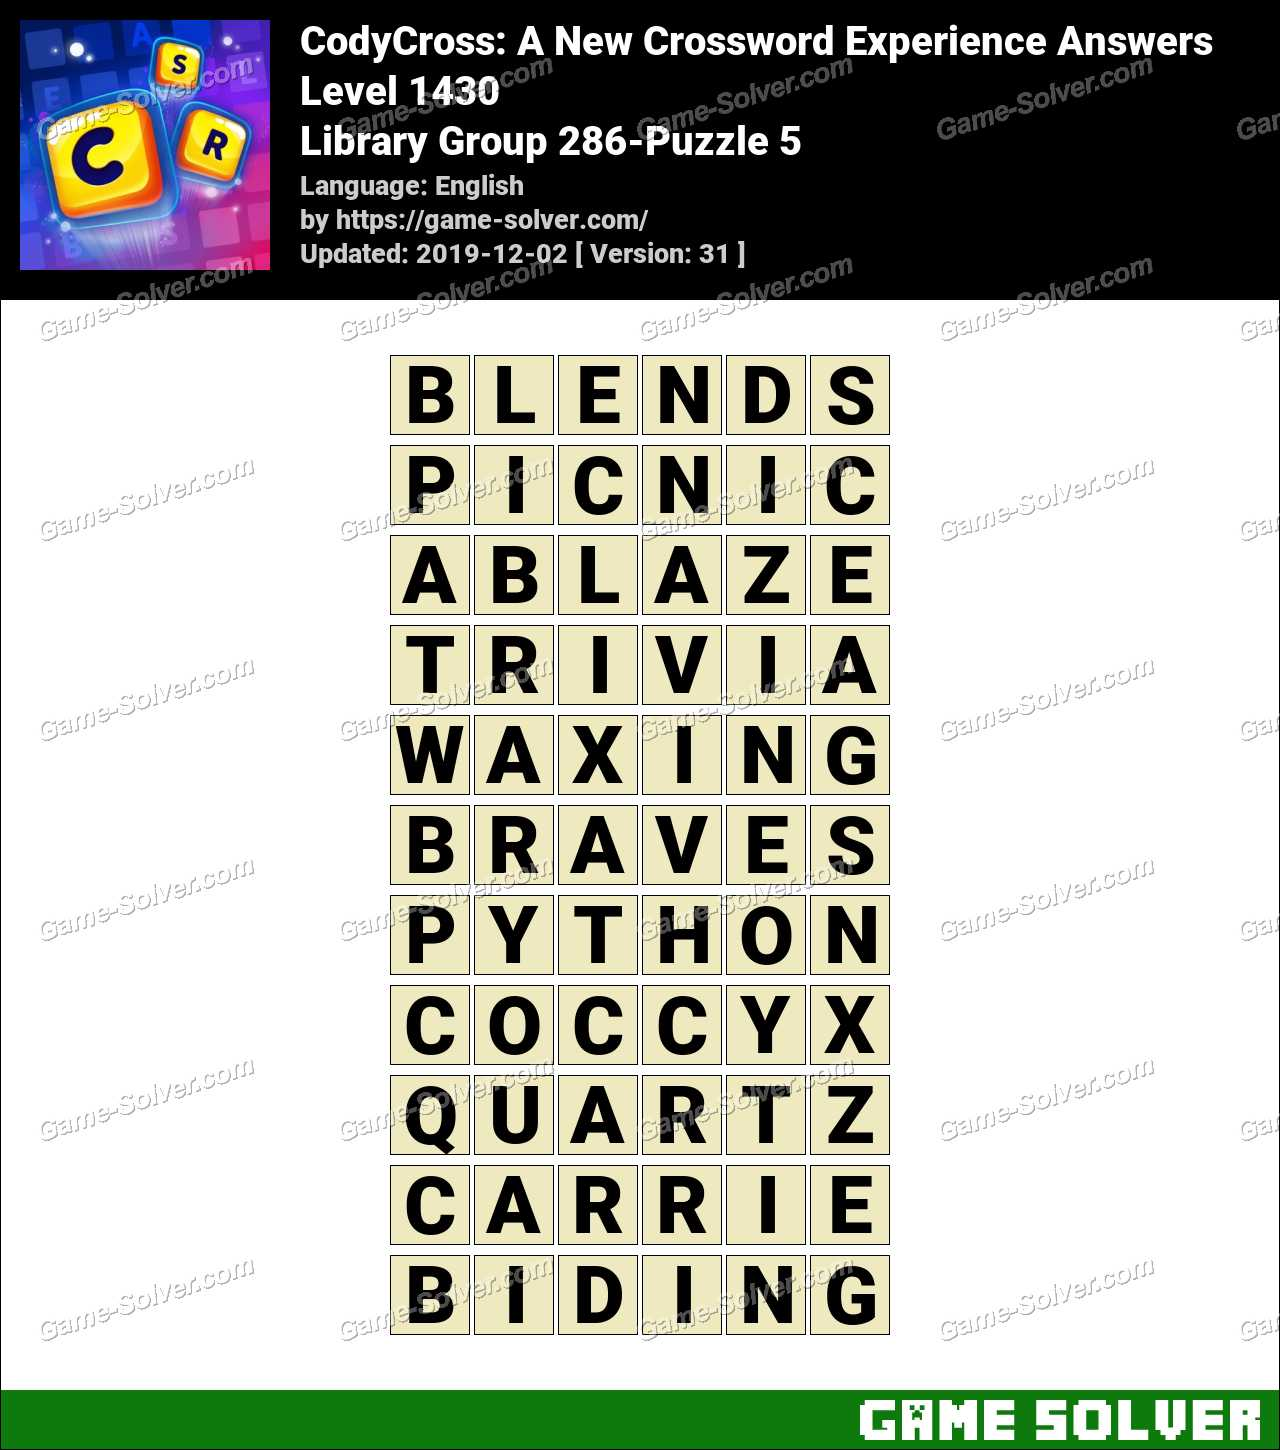 CodyCross Library Group 286-Puzzle 5 Answers